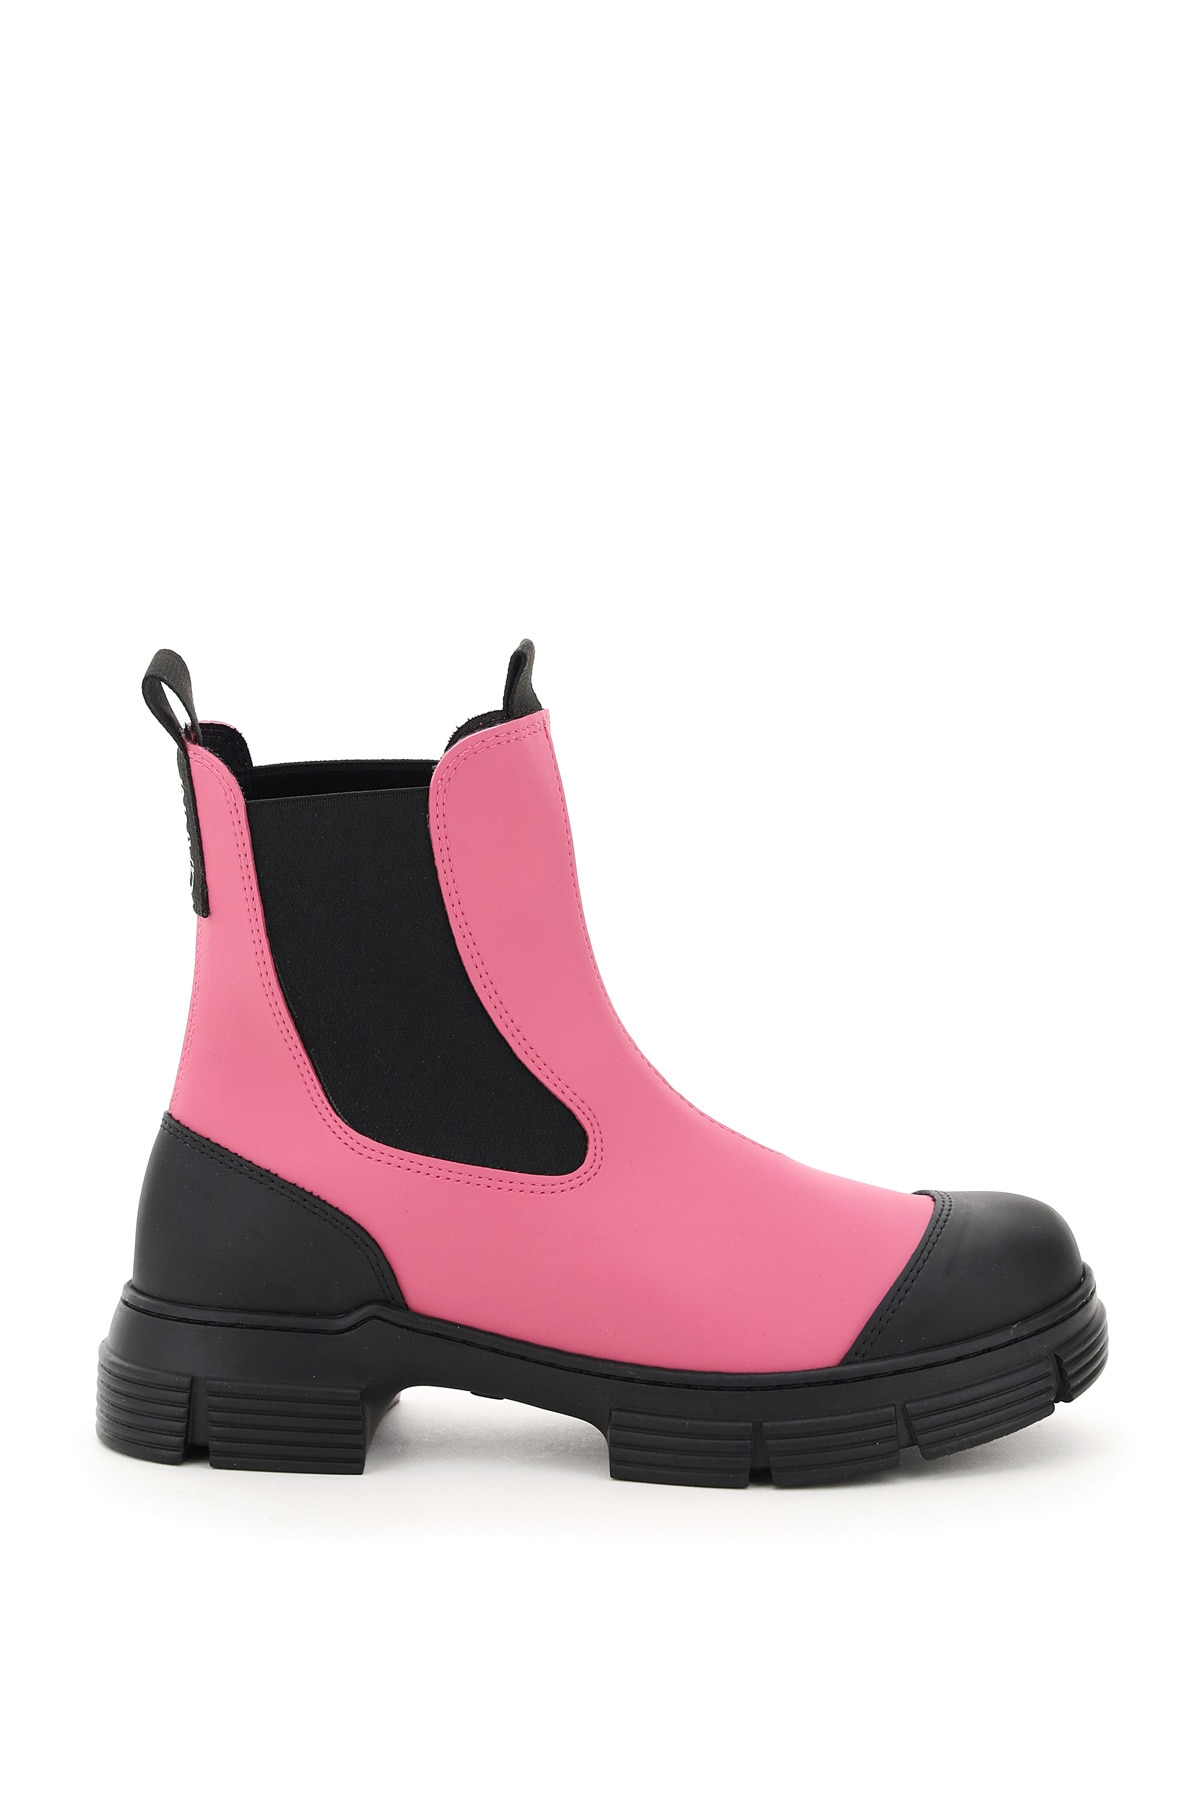 Ganni Recycled Rubber Chelsea Boots 36 Black, Fuchsia